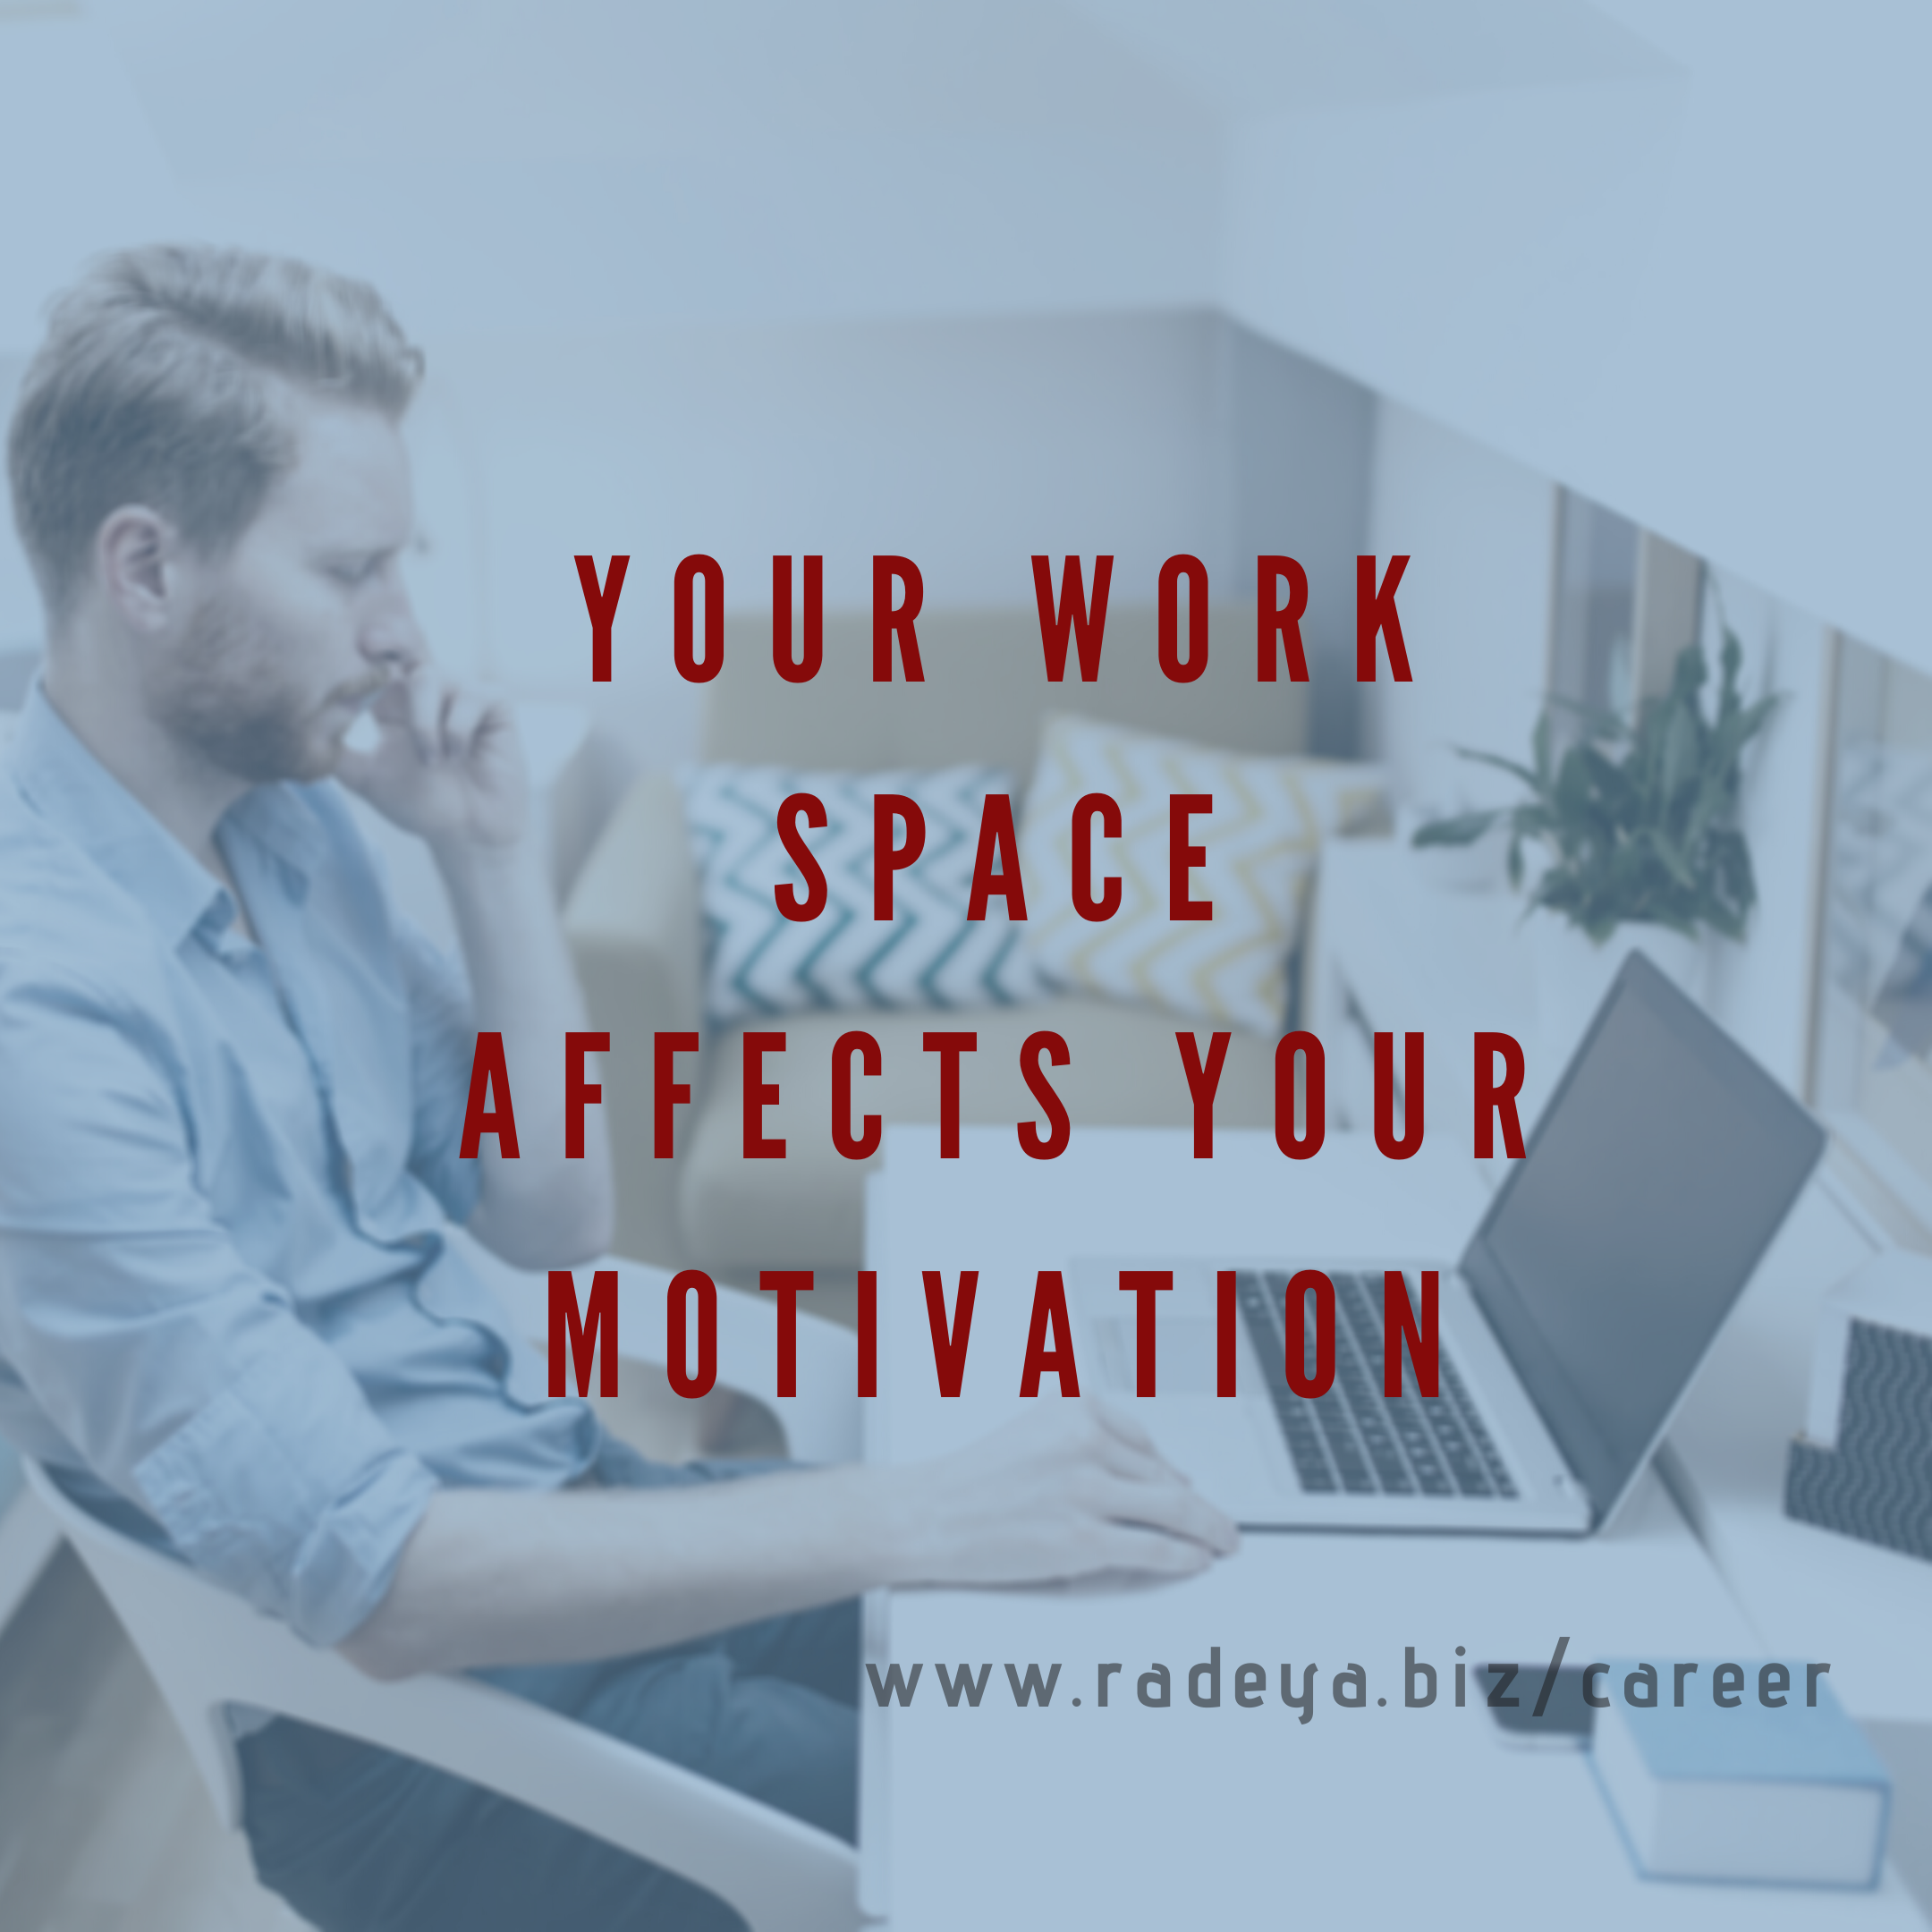 Your work space affects your motivation